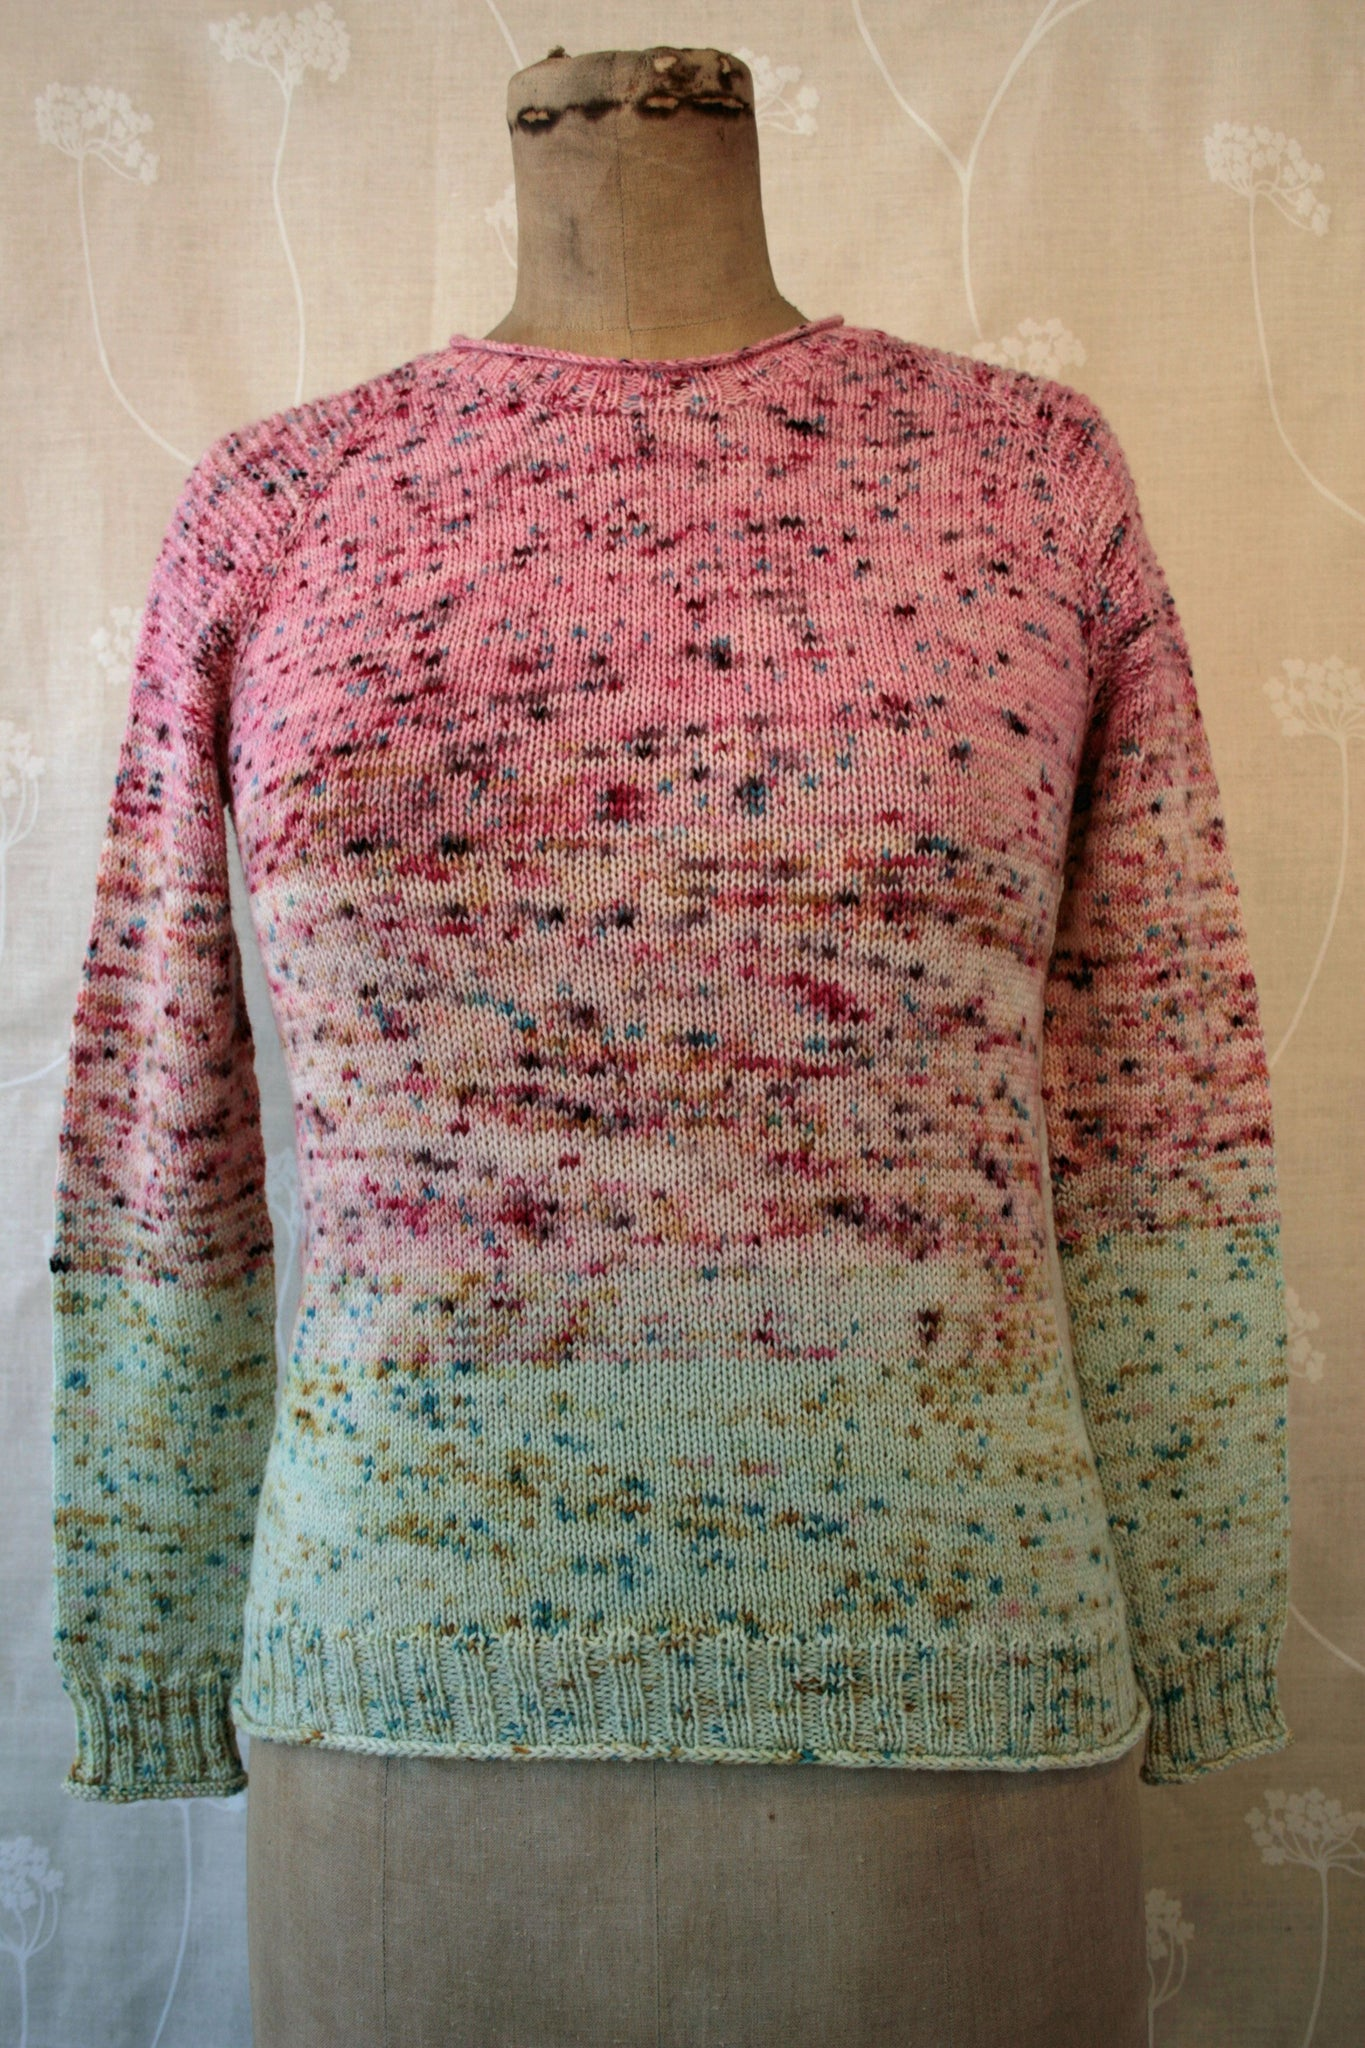 Workshop - Knit your first Sweater - Jumper Club